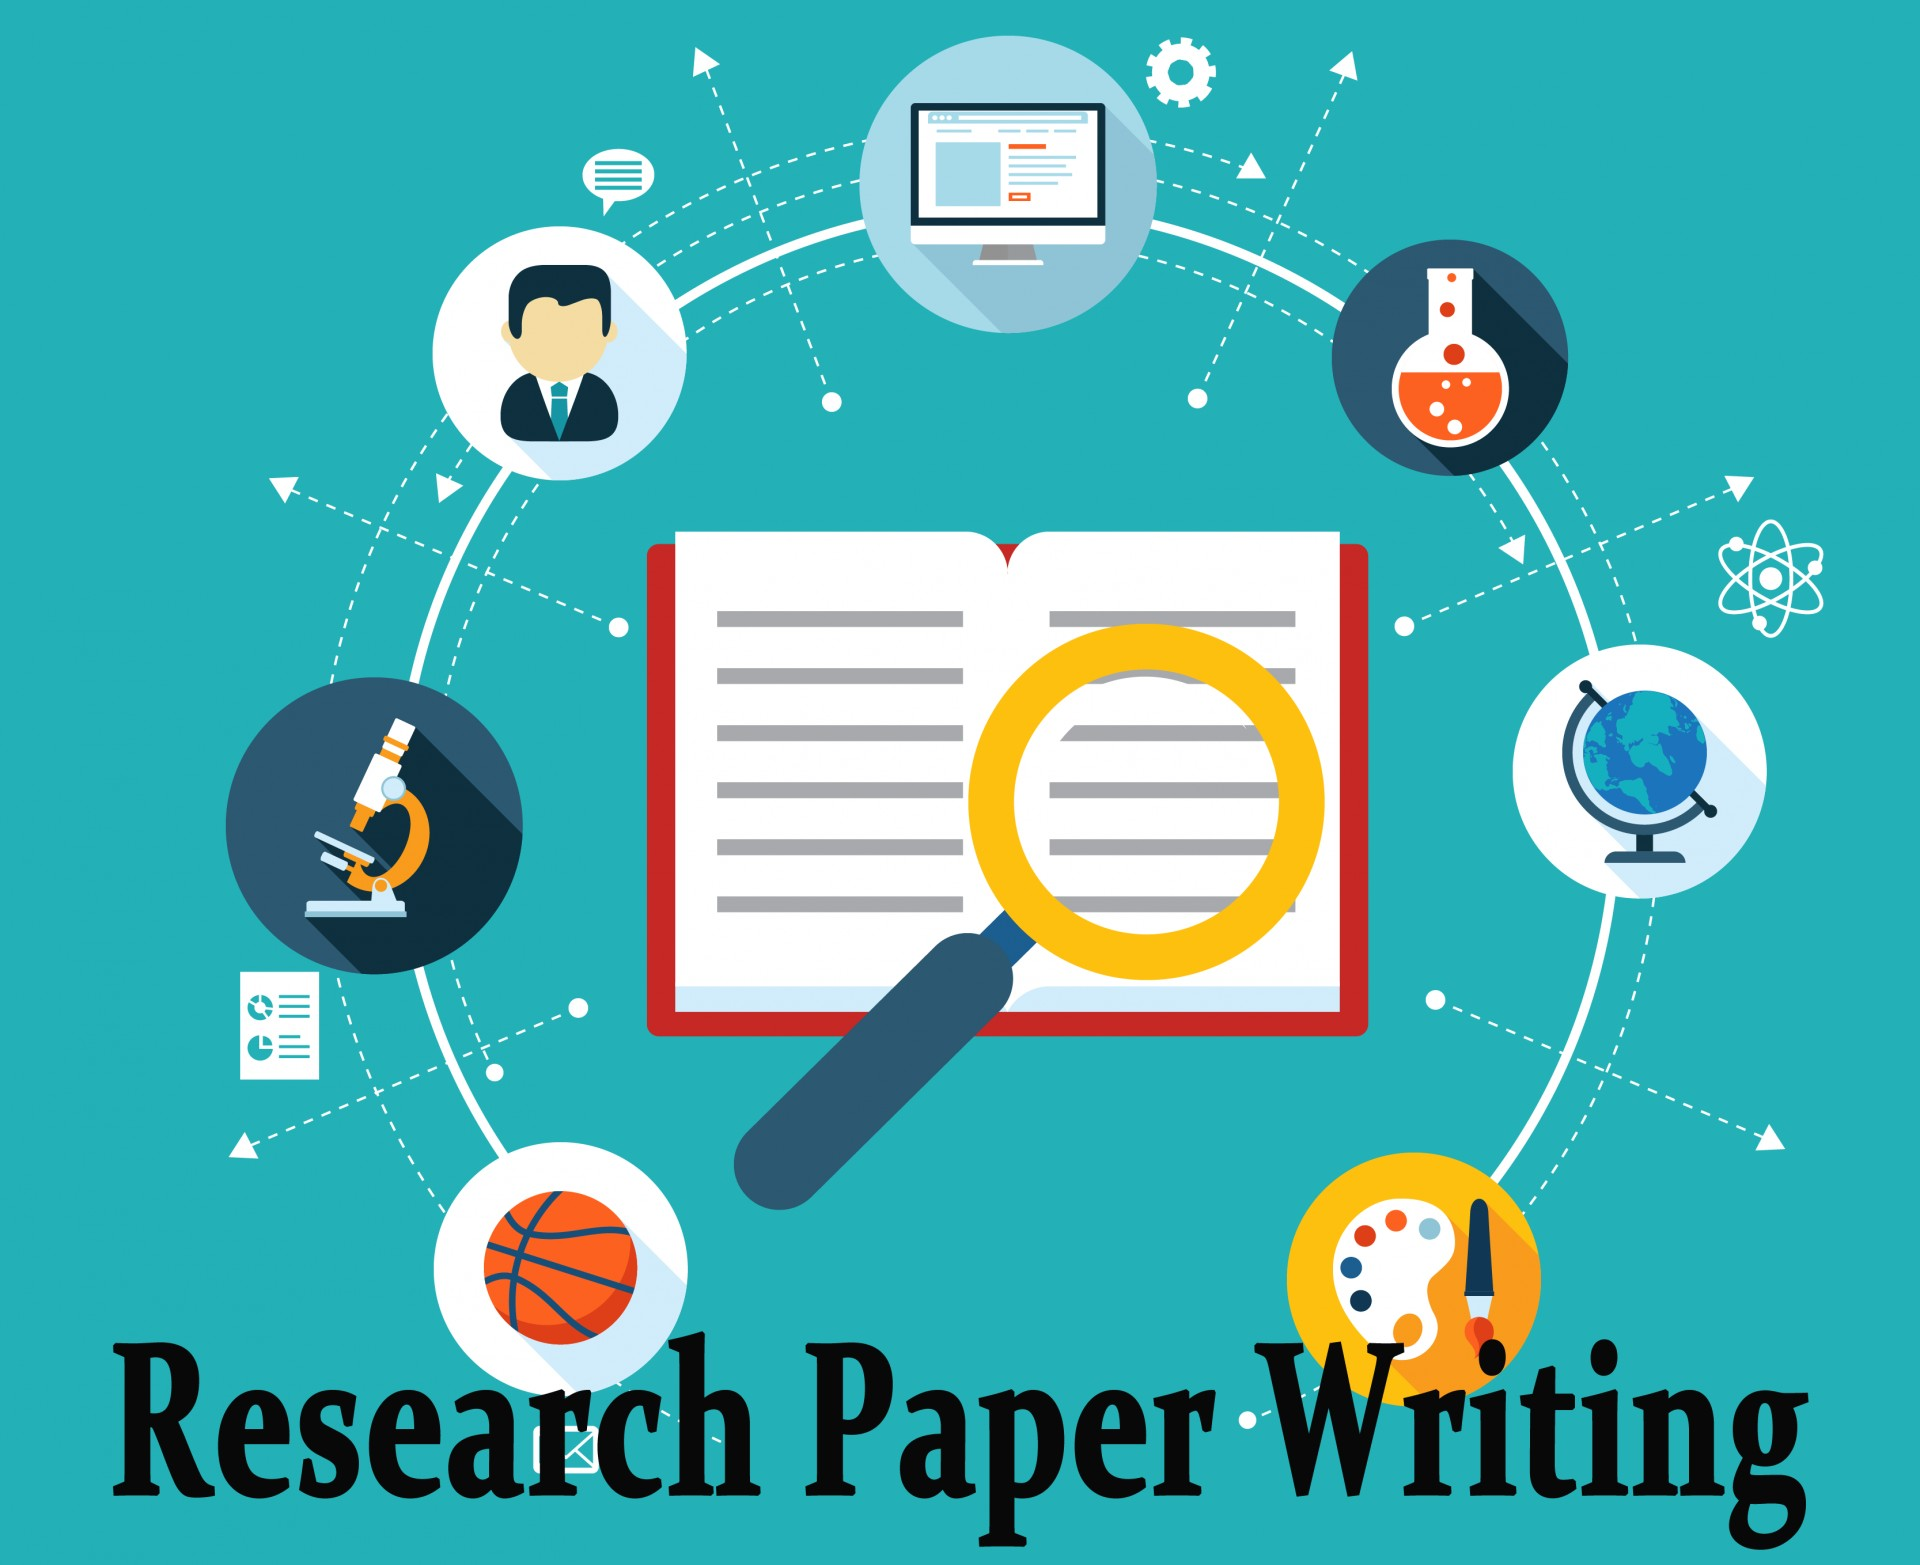 002 Help On Writing Research Paper 503 Effective Frightening A My Introduction 1920